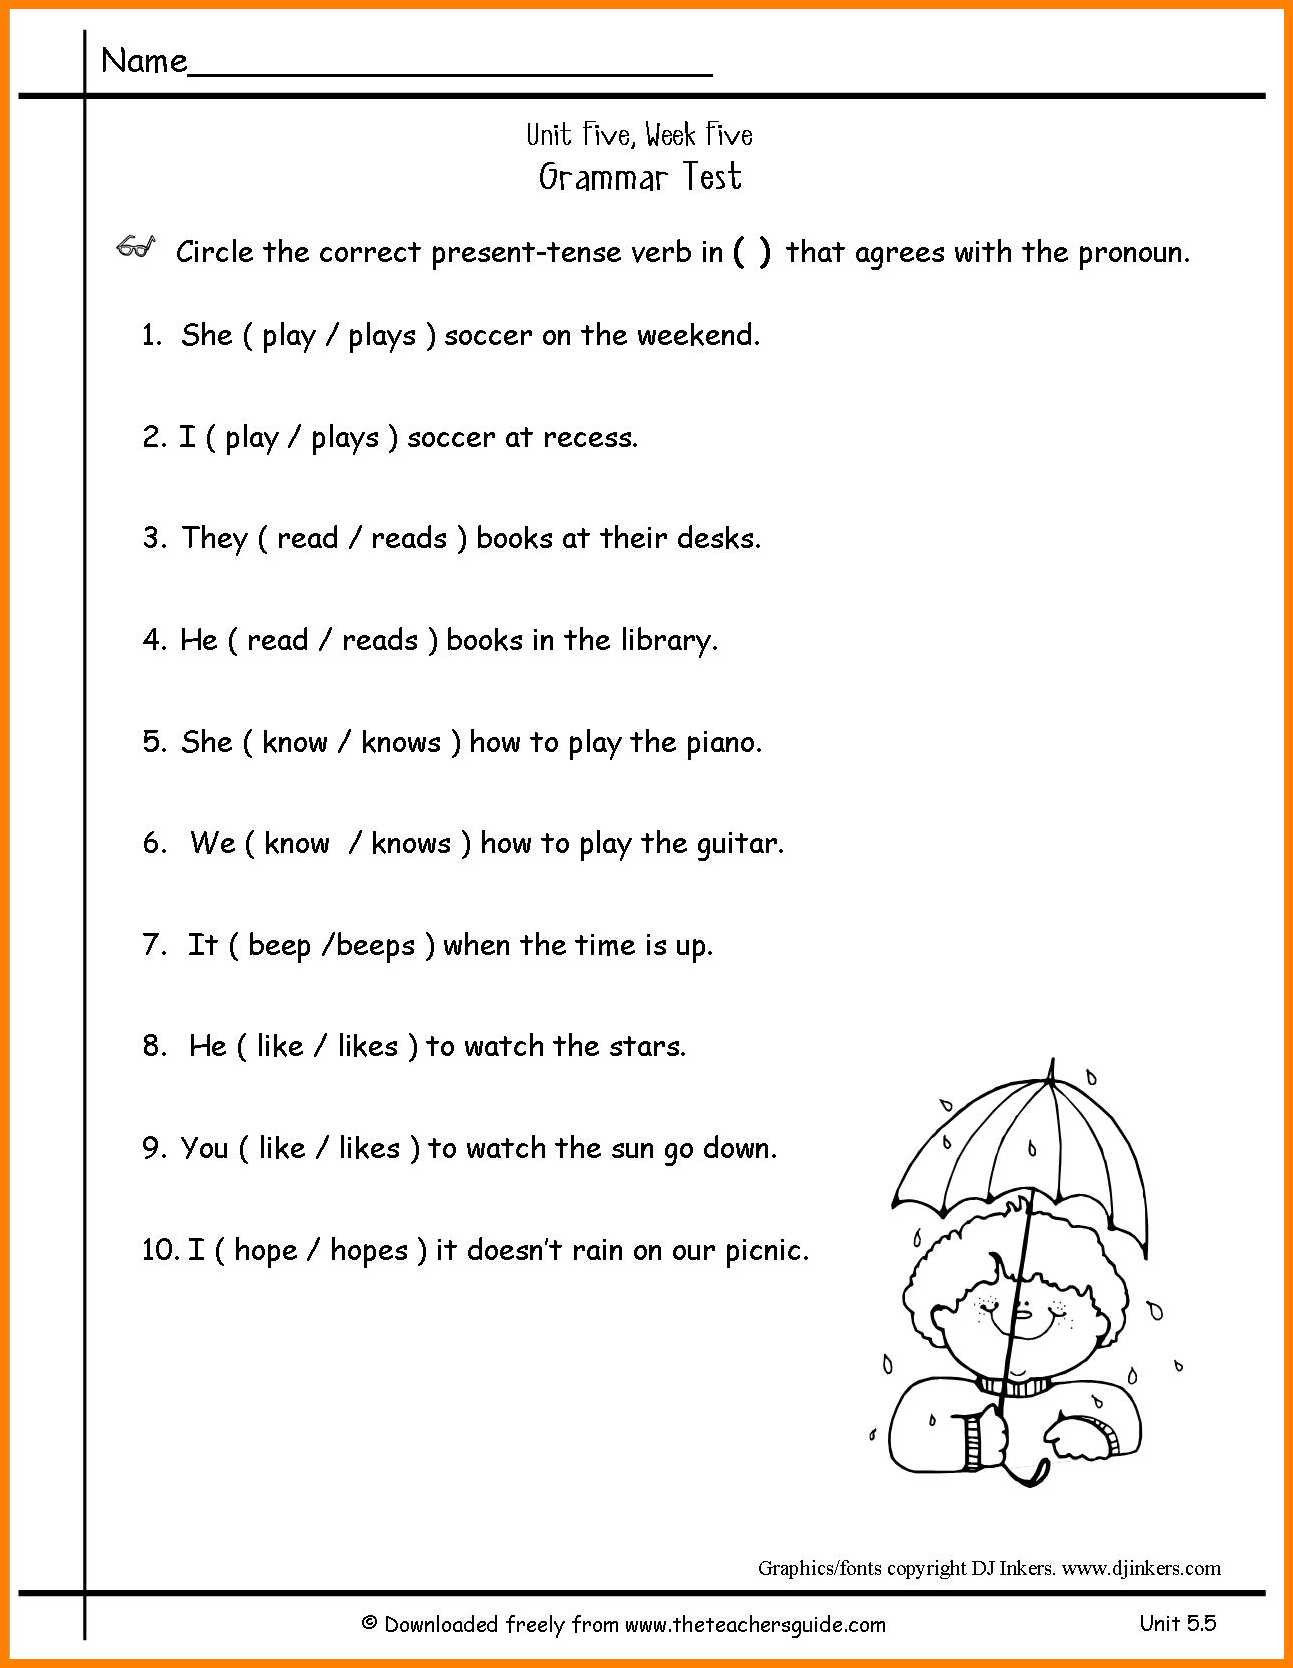 Relative Pronouns Worksheets 4th Grade Fourth Grade Pronouns Worksheet